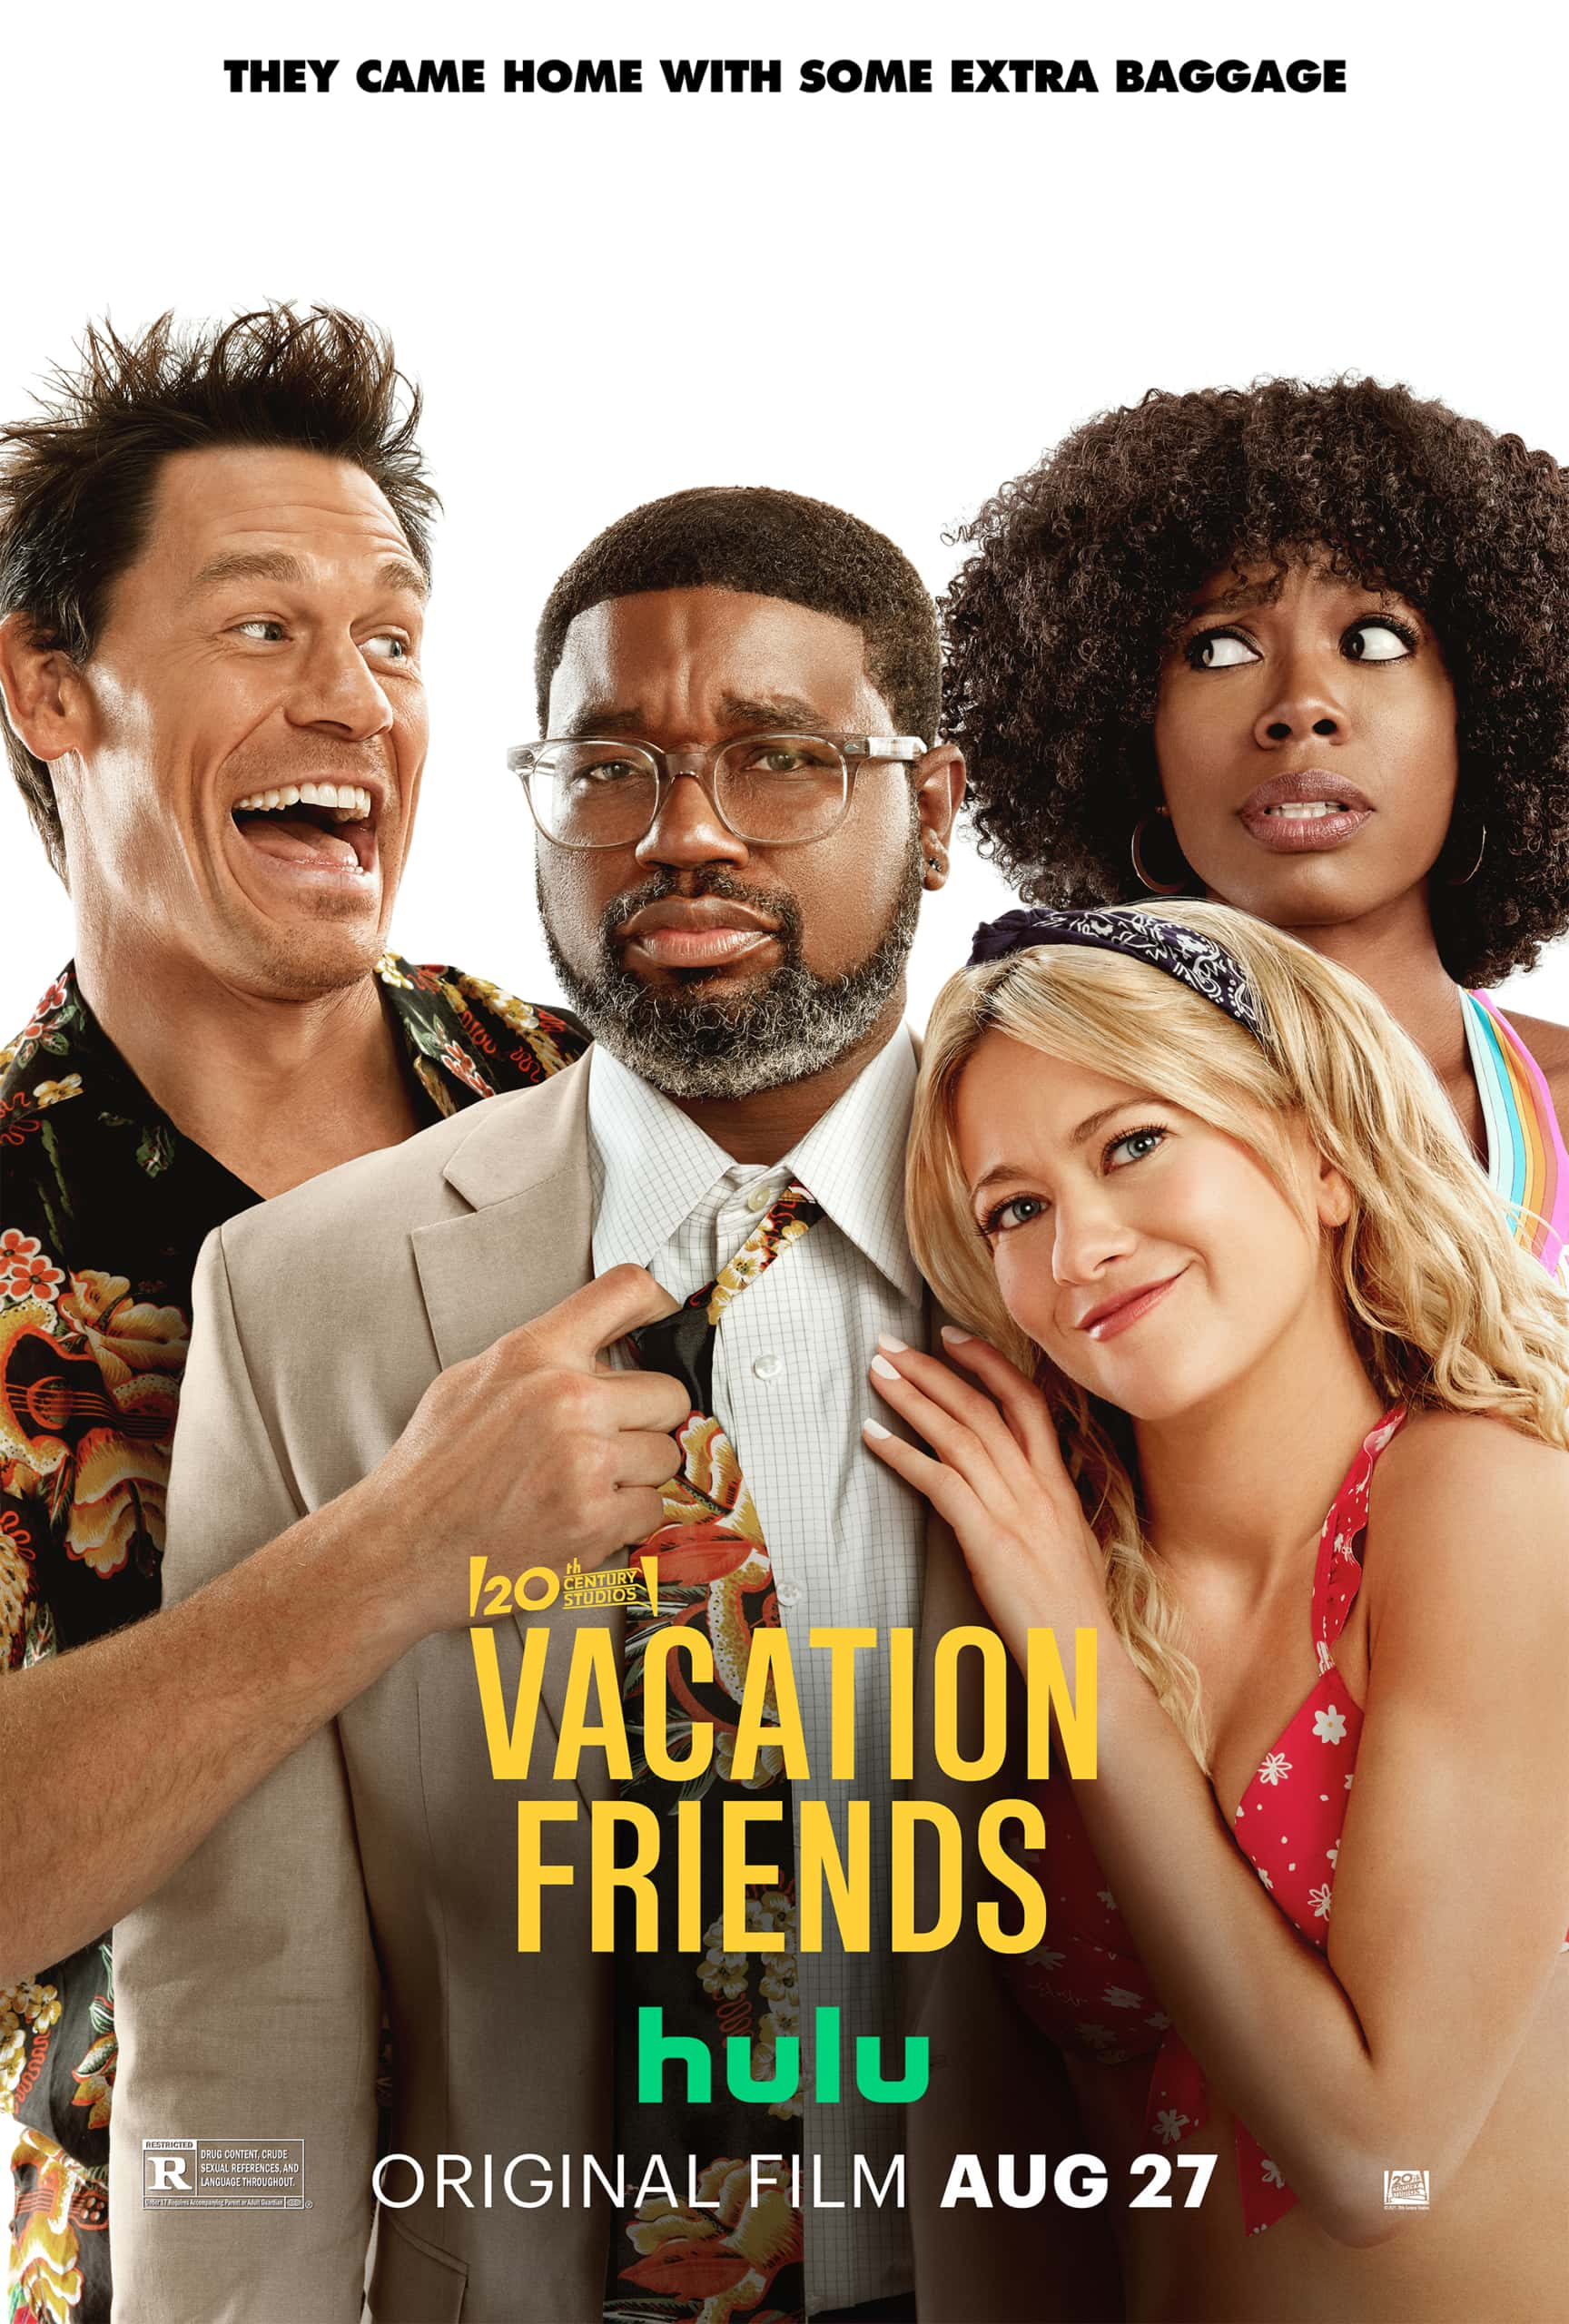 VACATION FRIENDS